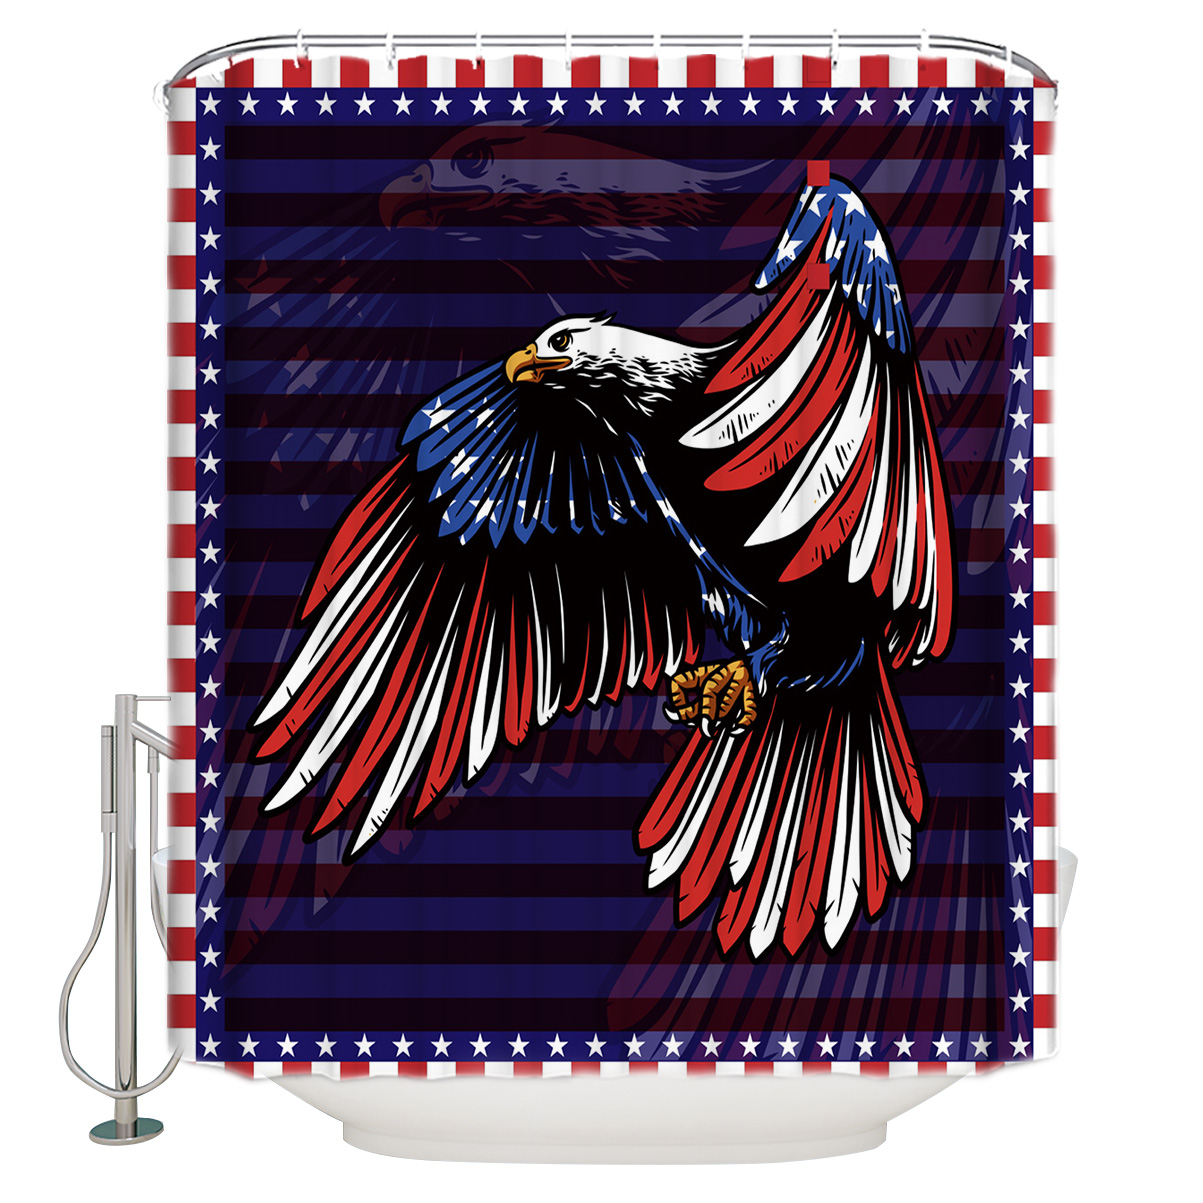 USA Eagle Flag Shower Curtain Waterproof Polyester with 12 Hooks Bathroom Decor